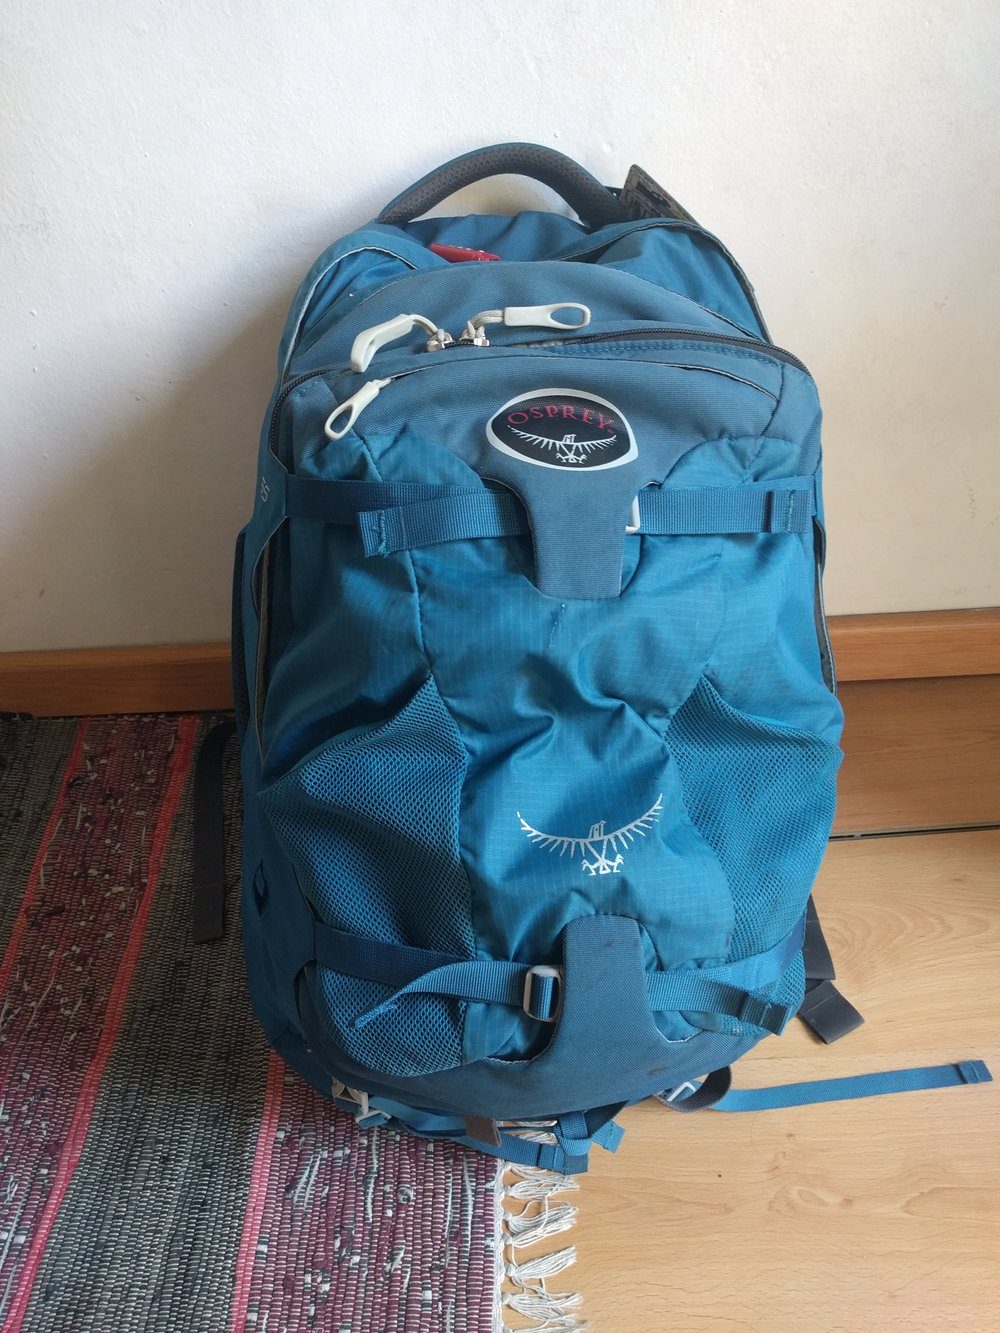 Here you can see the Osprey Farpoint 55 daypack attached to the main bag. The reinforced fabric just under the logo and coming up from the base accommodate retention straps from the main bag that support the main weight of the daypack. It also zips around the rear of the daypack onto the main access panel on the main bag. The connection is very secure, but creates numerous compromises on accessibility and organization in both bags.